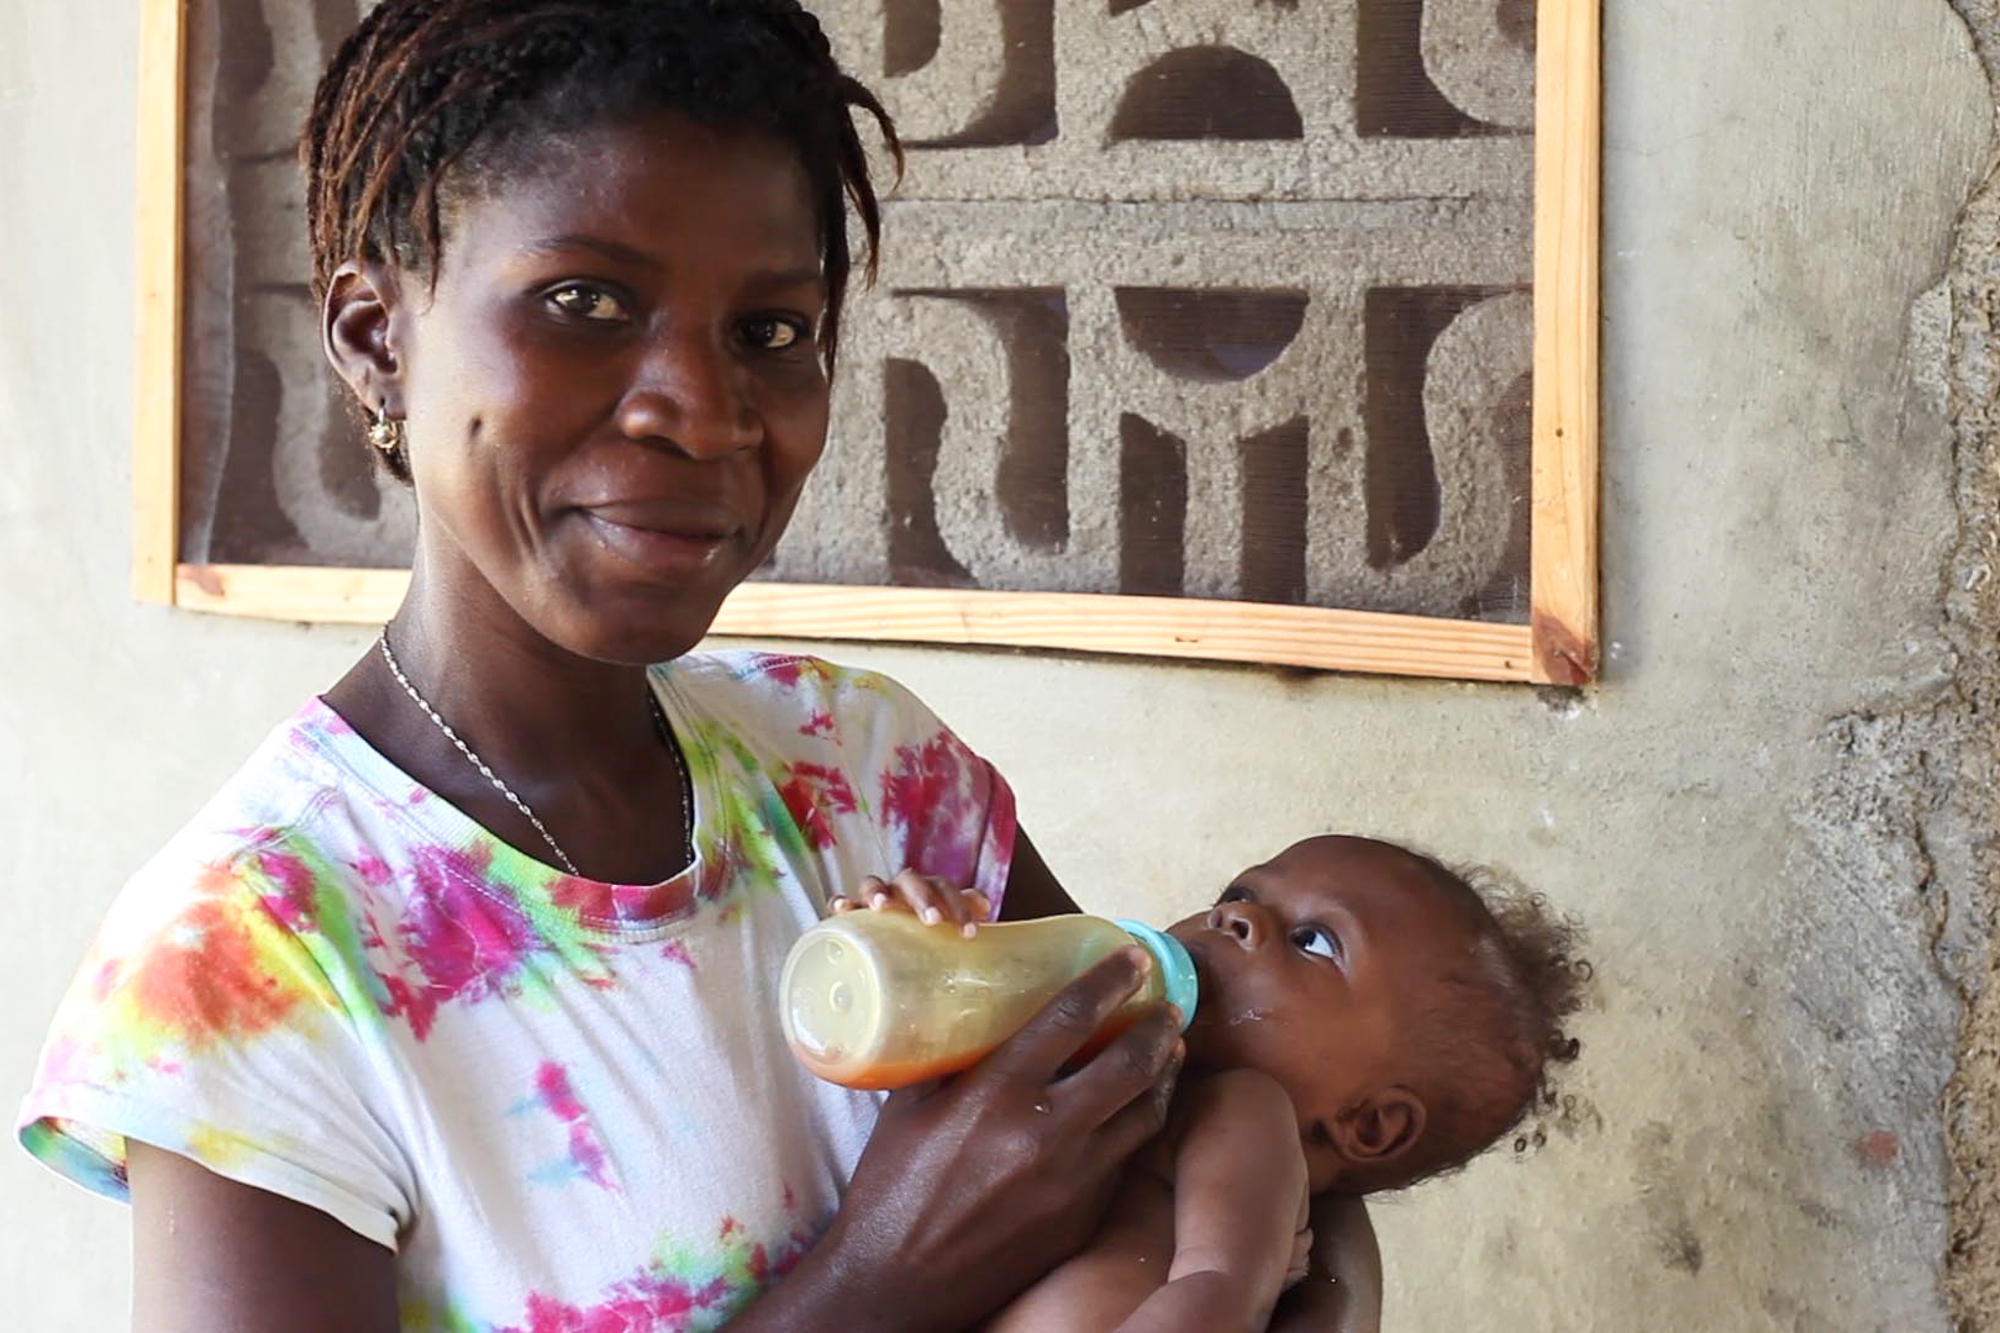 31. Amanda P. - I know that quality postnatal healthcare ensures healthy, living mothers. I support mothers in Haiti so that they have access to the care they need.